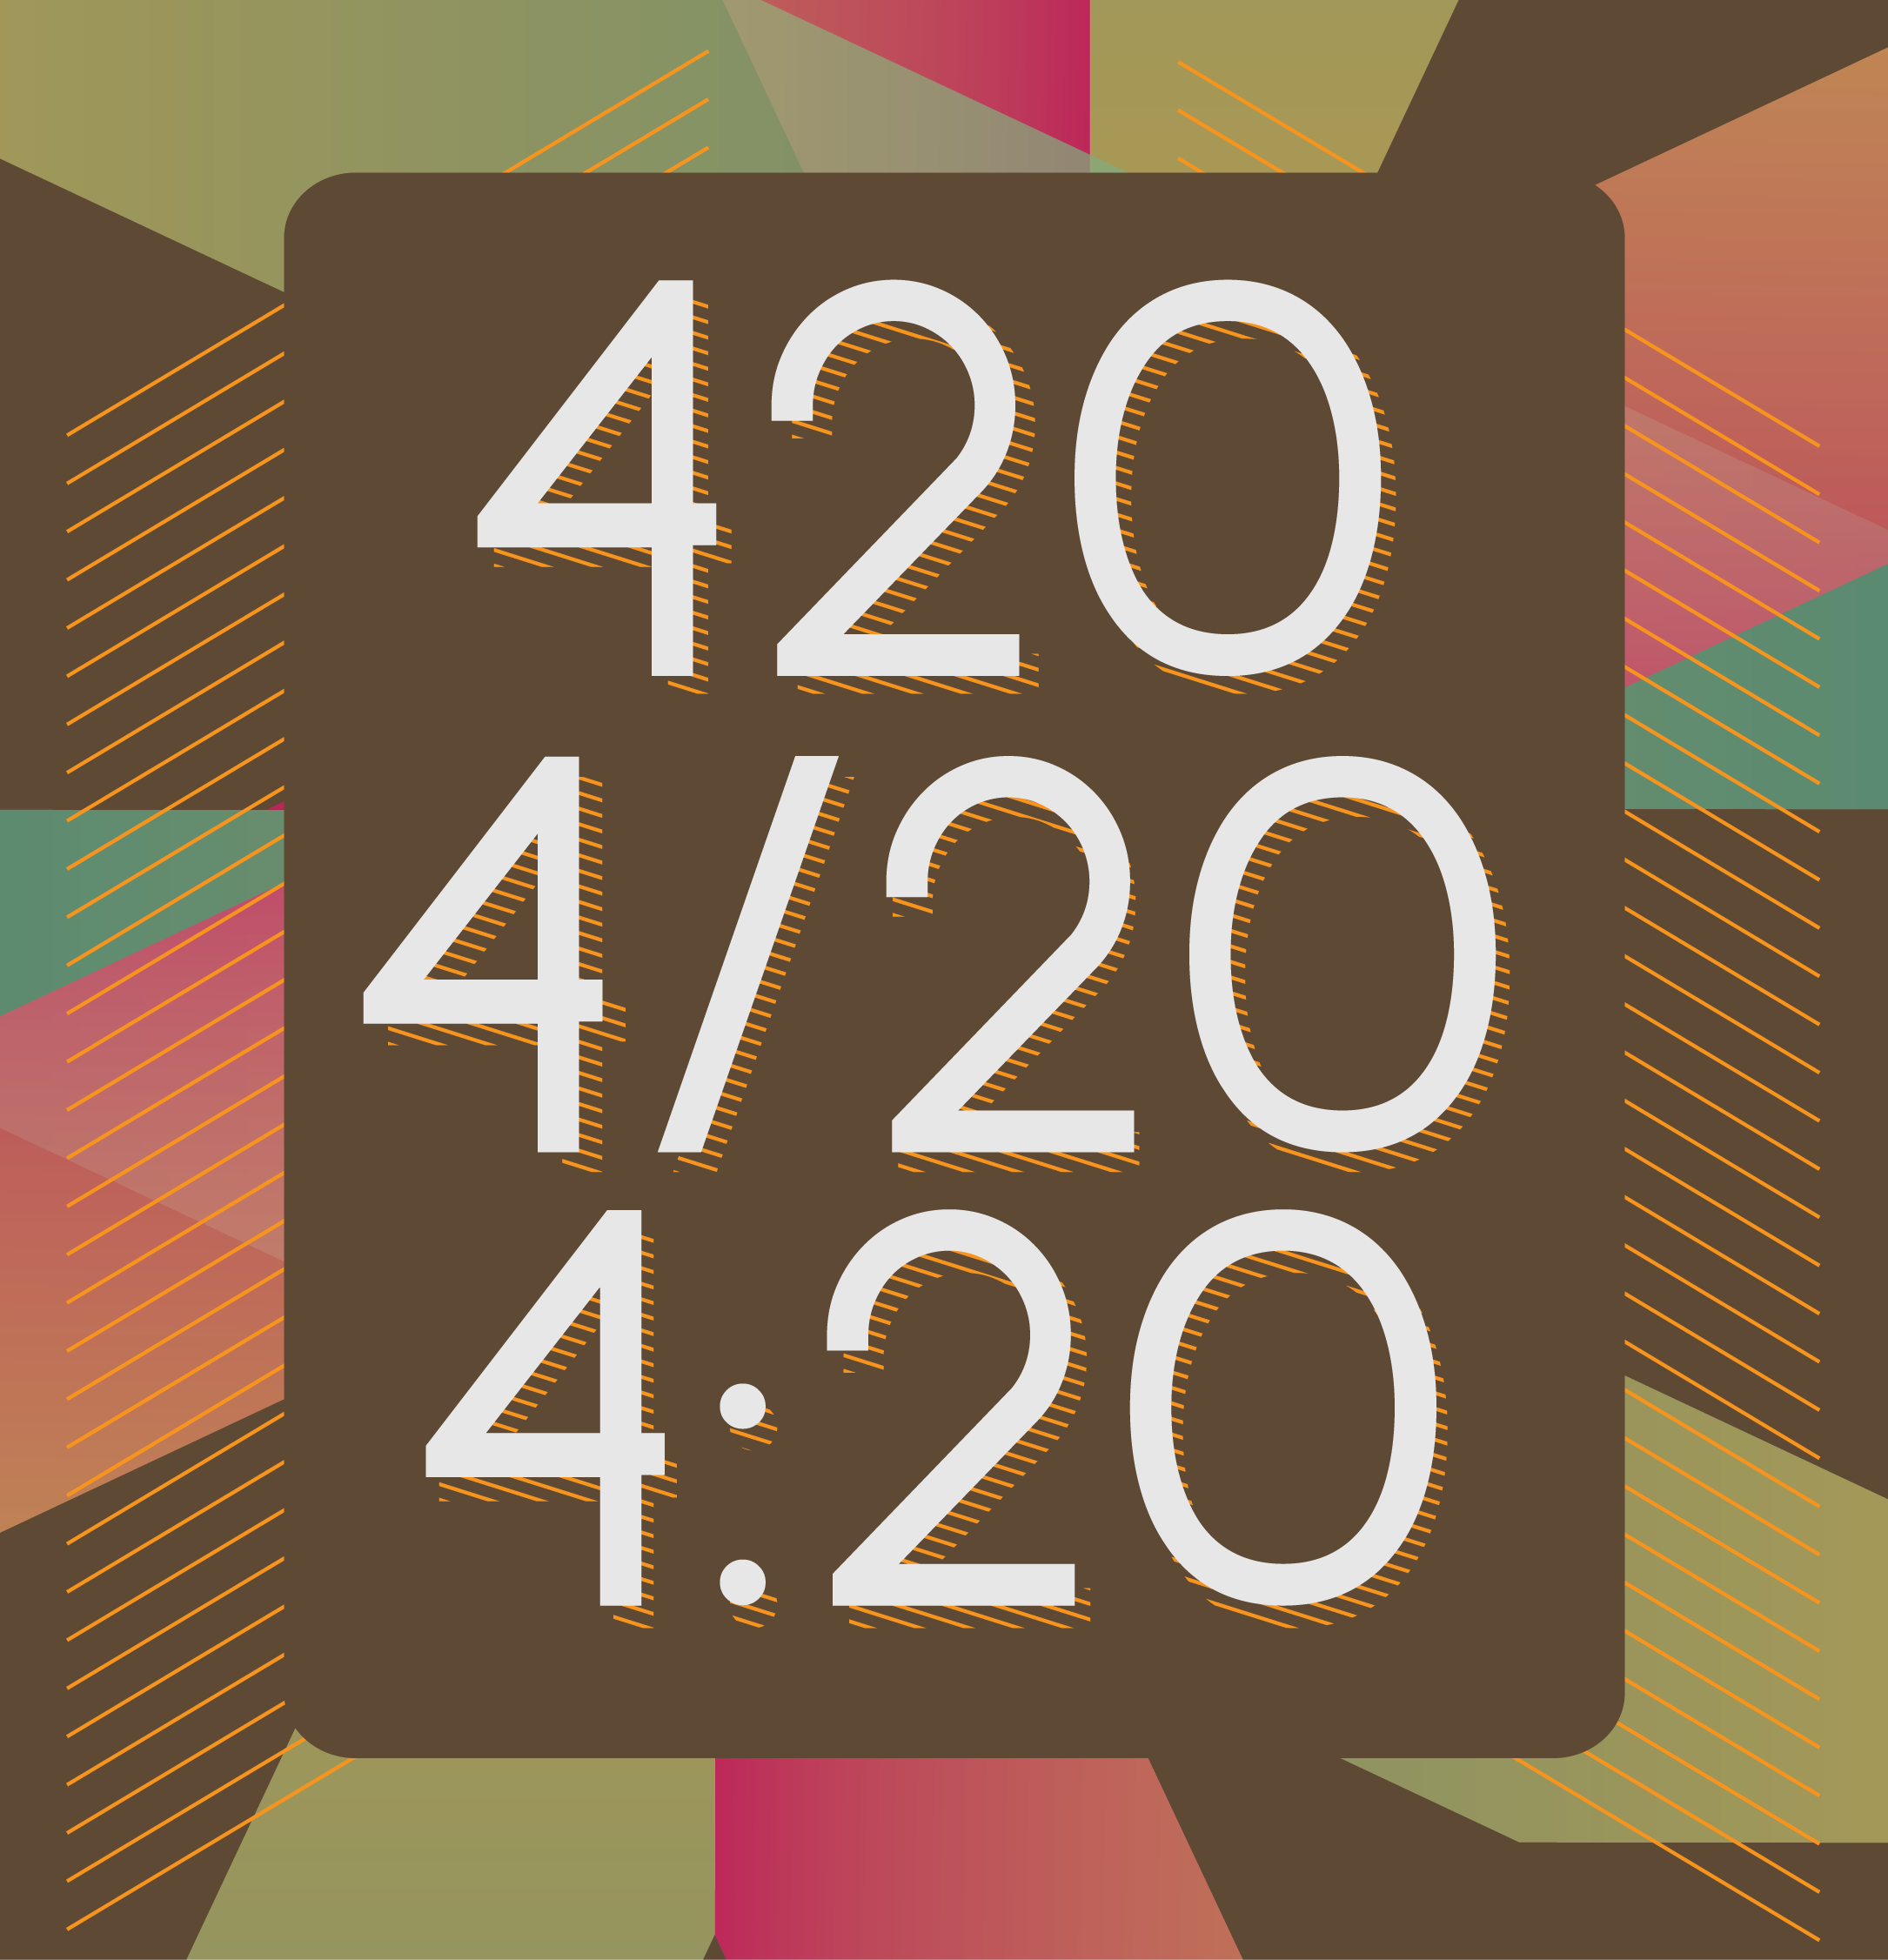 420 on 4/20 by 4:20 – Part 4 – The Good Soil